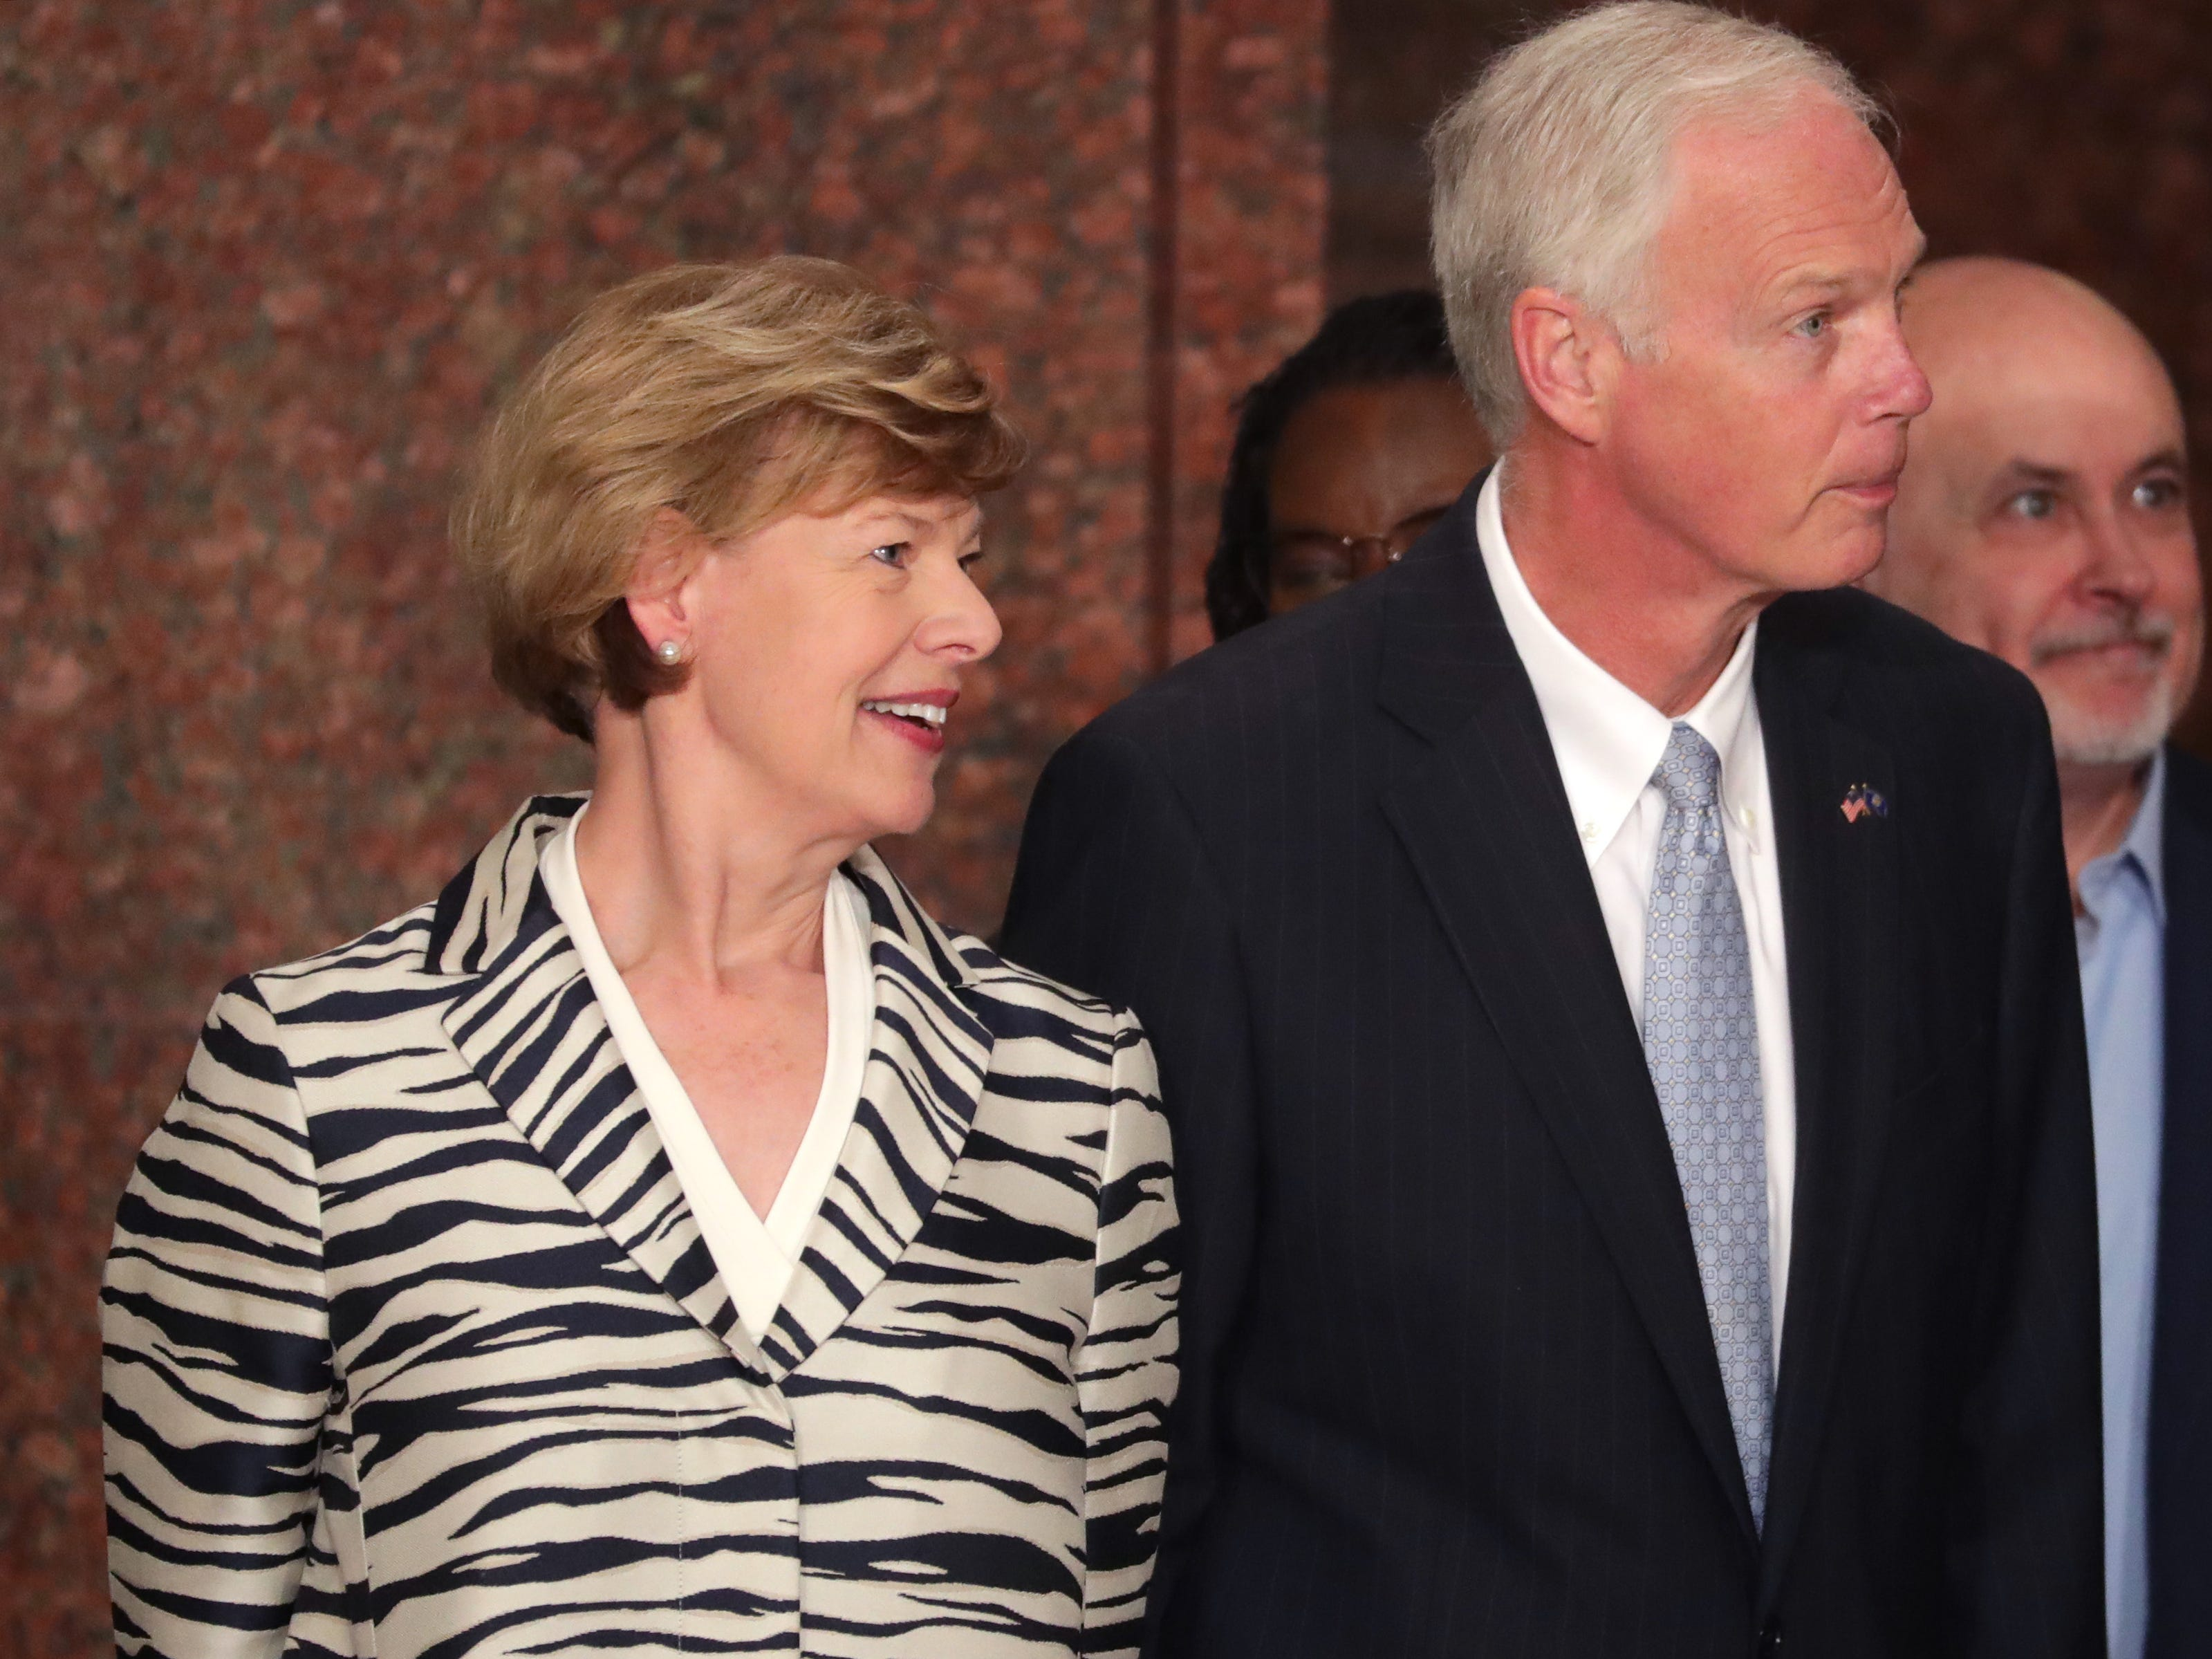 U.S. Sens. Tammy Baldwin (left) and Ron Johnson take their seats before the ceremony.